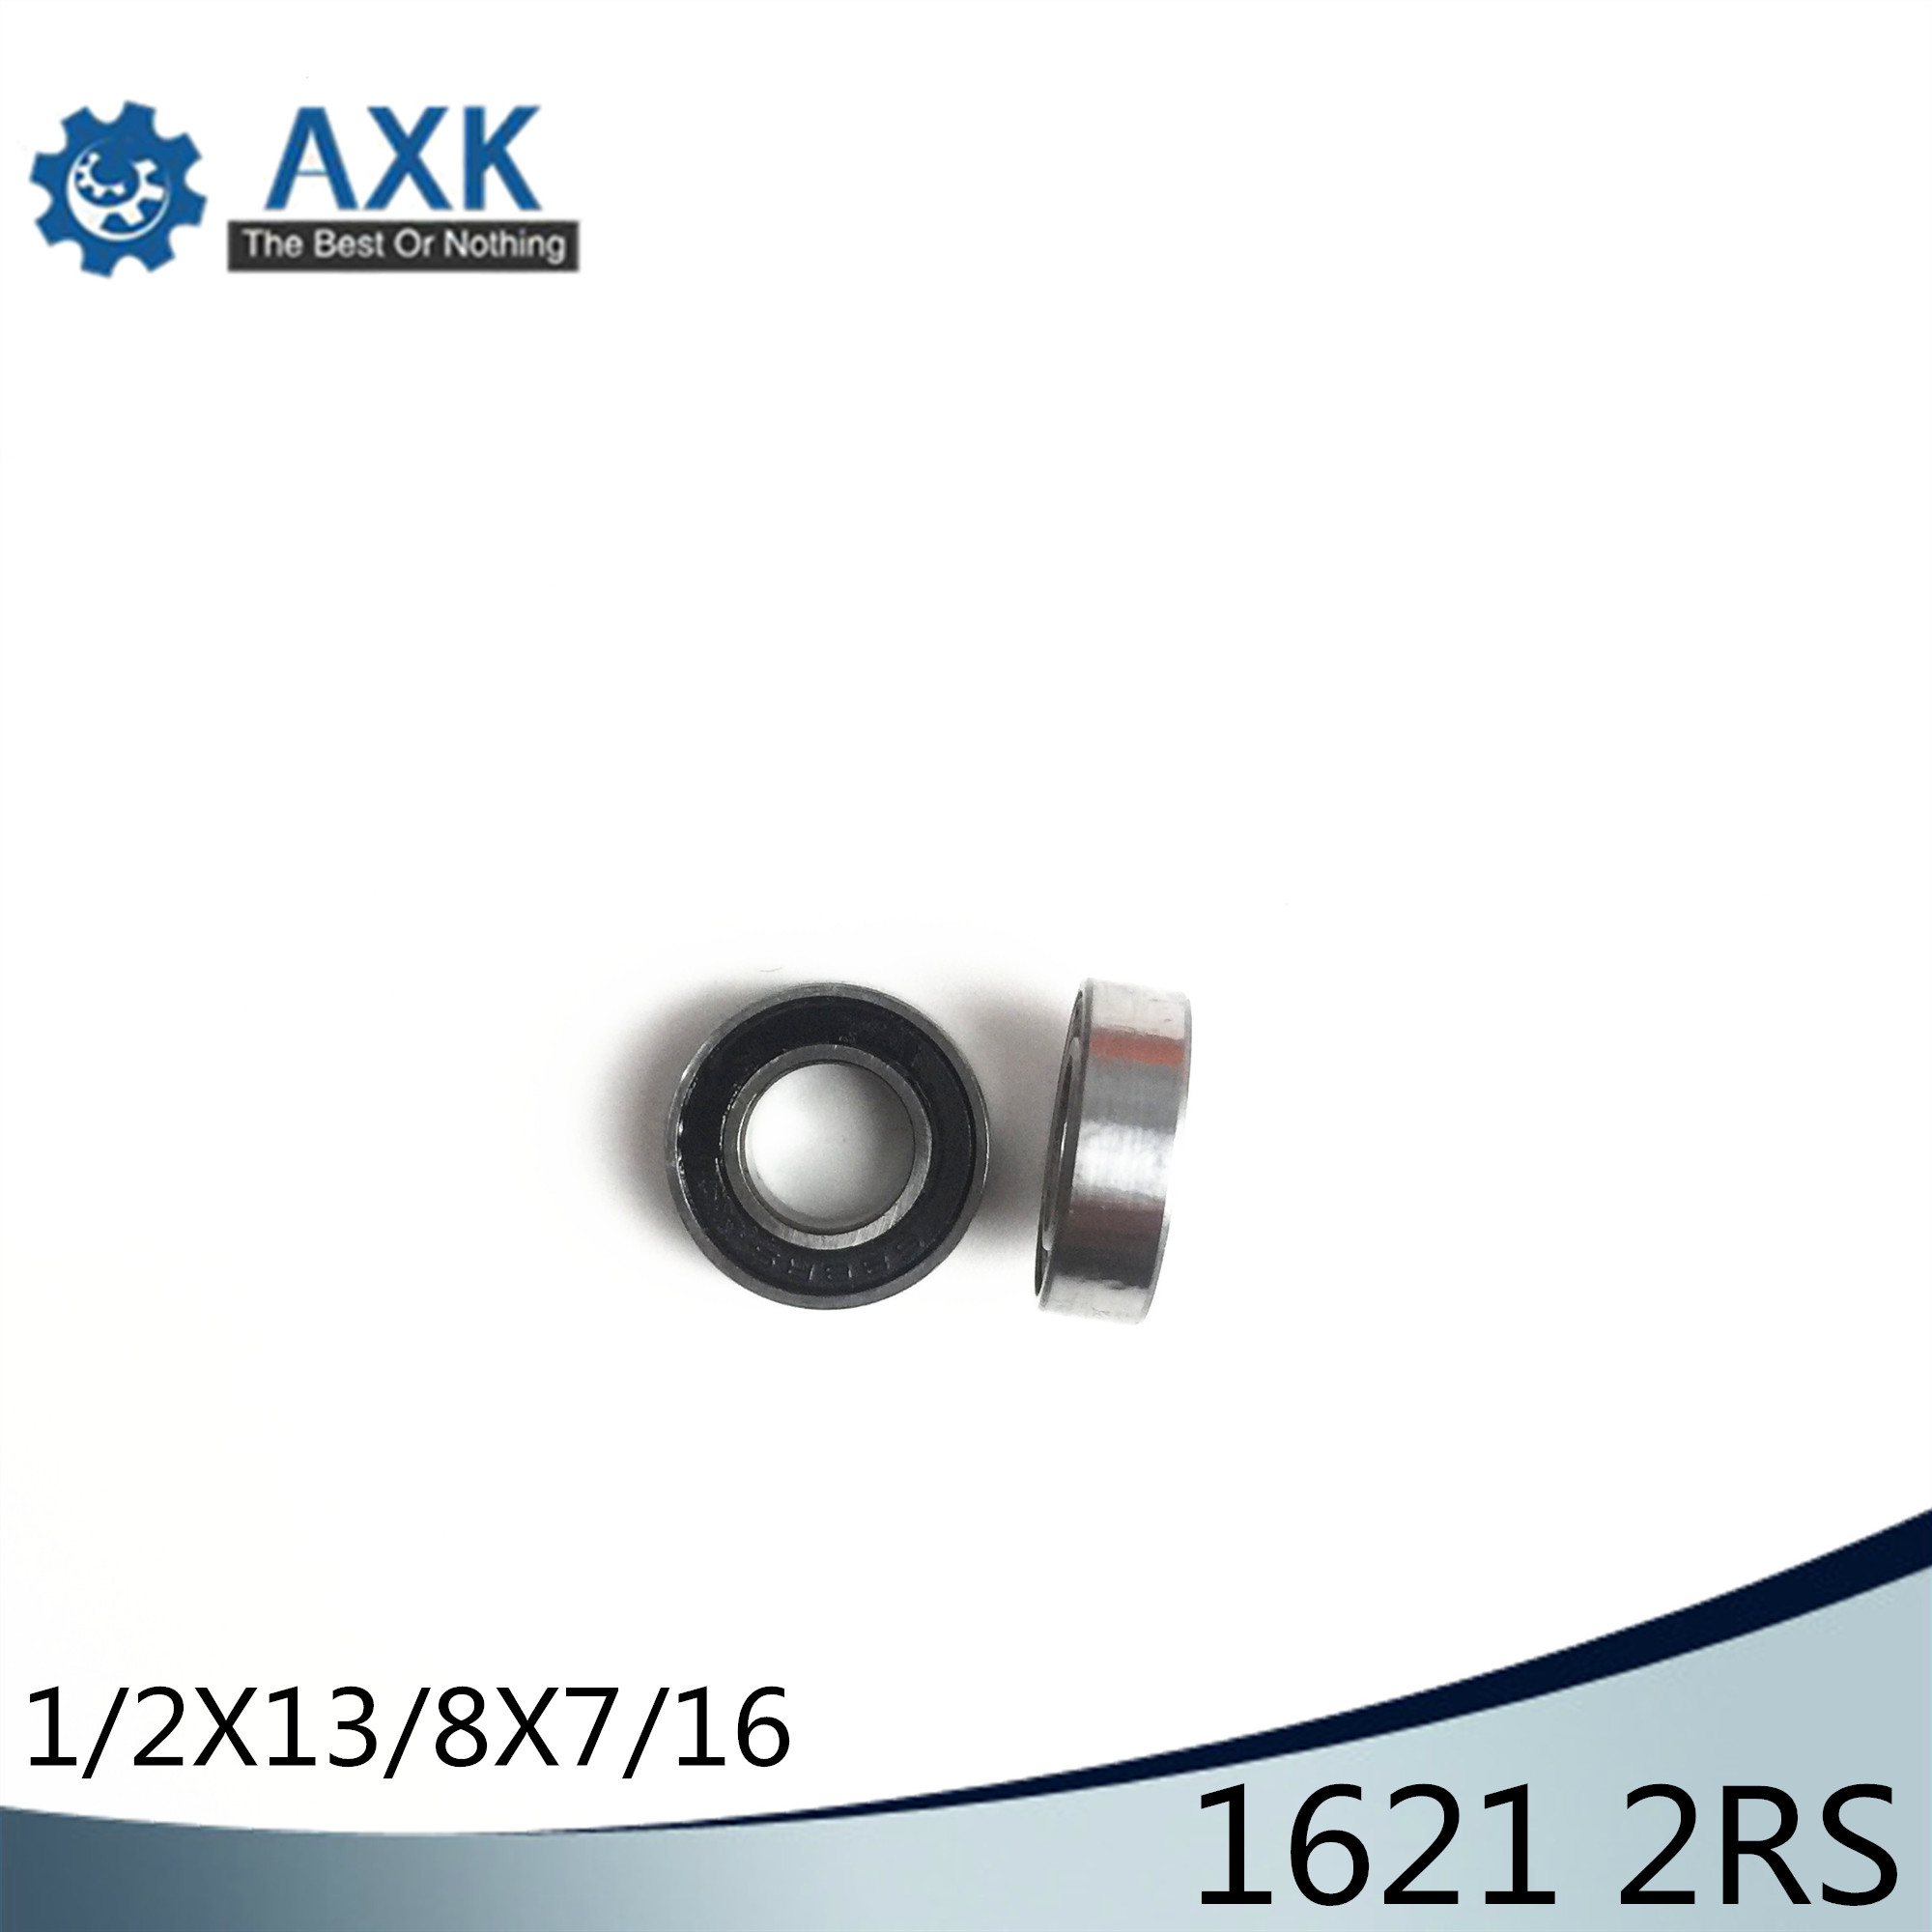 1621 2RS ABEC-1 (10PCS)  1/2x1 3/8x7/16 inch Ball Bearings 12.7mm x 34.925mm x 11.112mm 1621RS1621 2RS ABEC-1 (10PCS)  1/2x1 3/8x7/16 inch Ball Bearings 12.7mm x 34.925mm x 11.112mm 1621RS